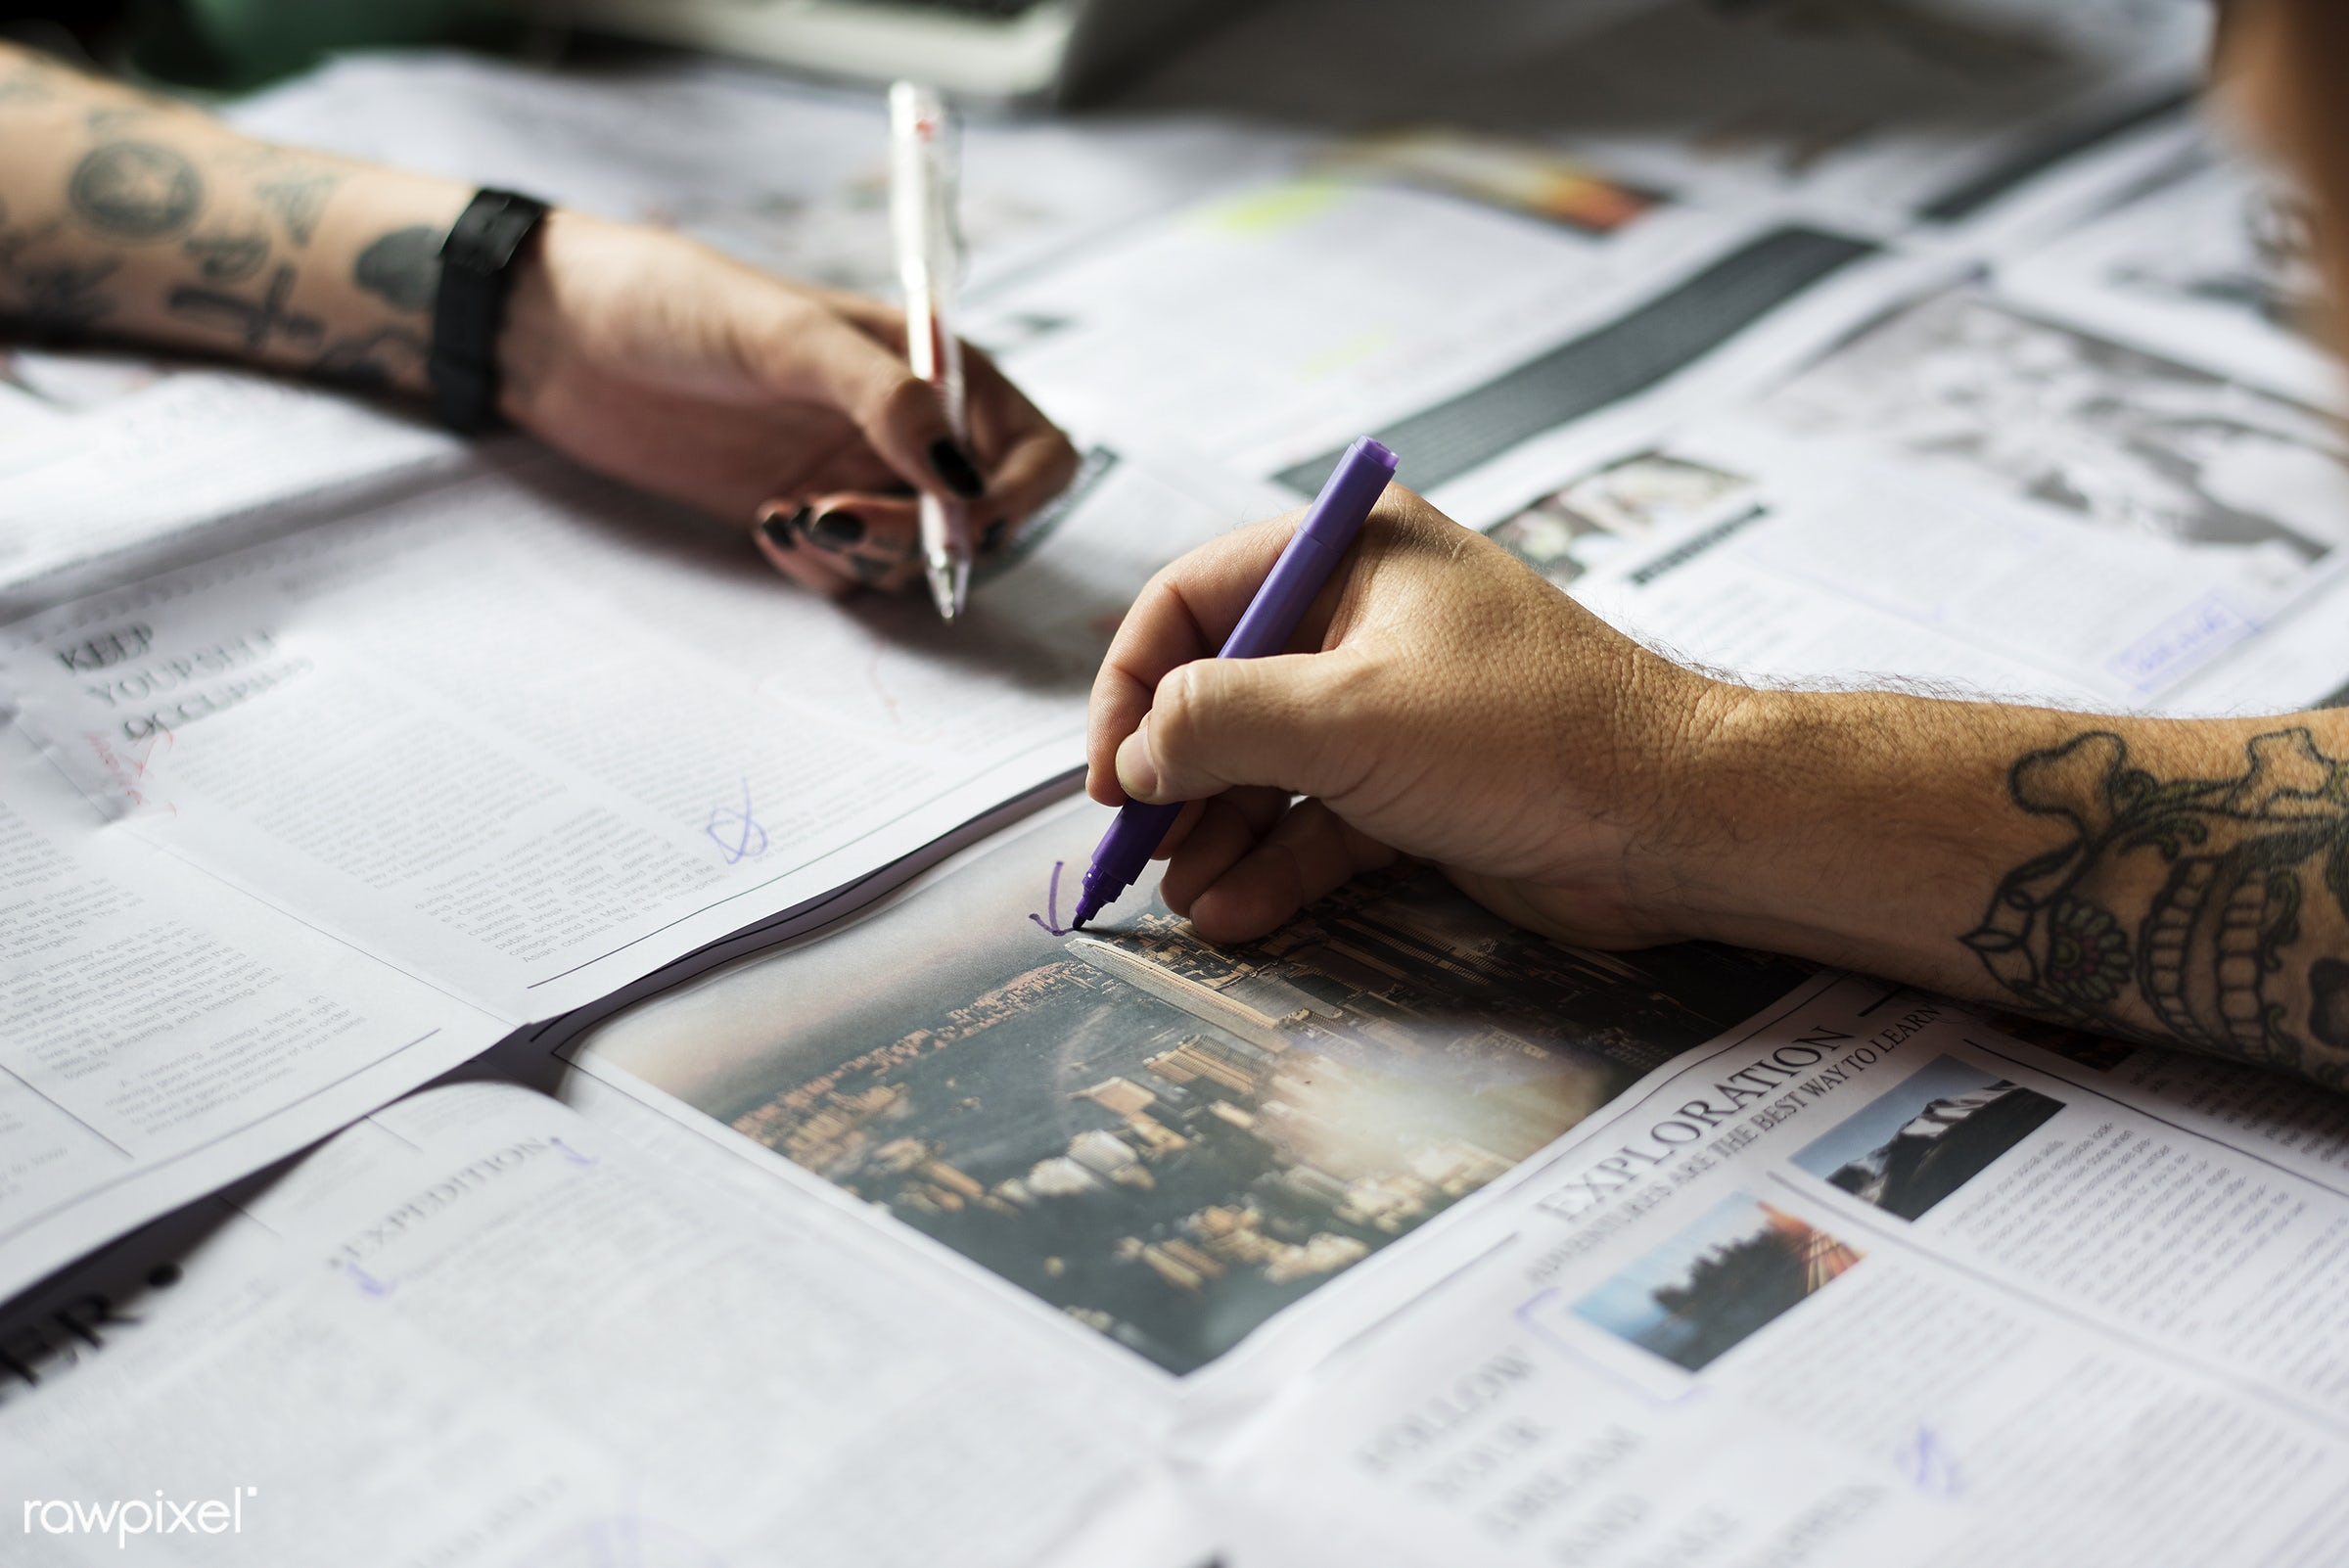 paper, writing, pens, hands, marking, tattoo, news, table, publication, two, marker, newspaper, creative commons 0, creative...